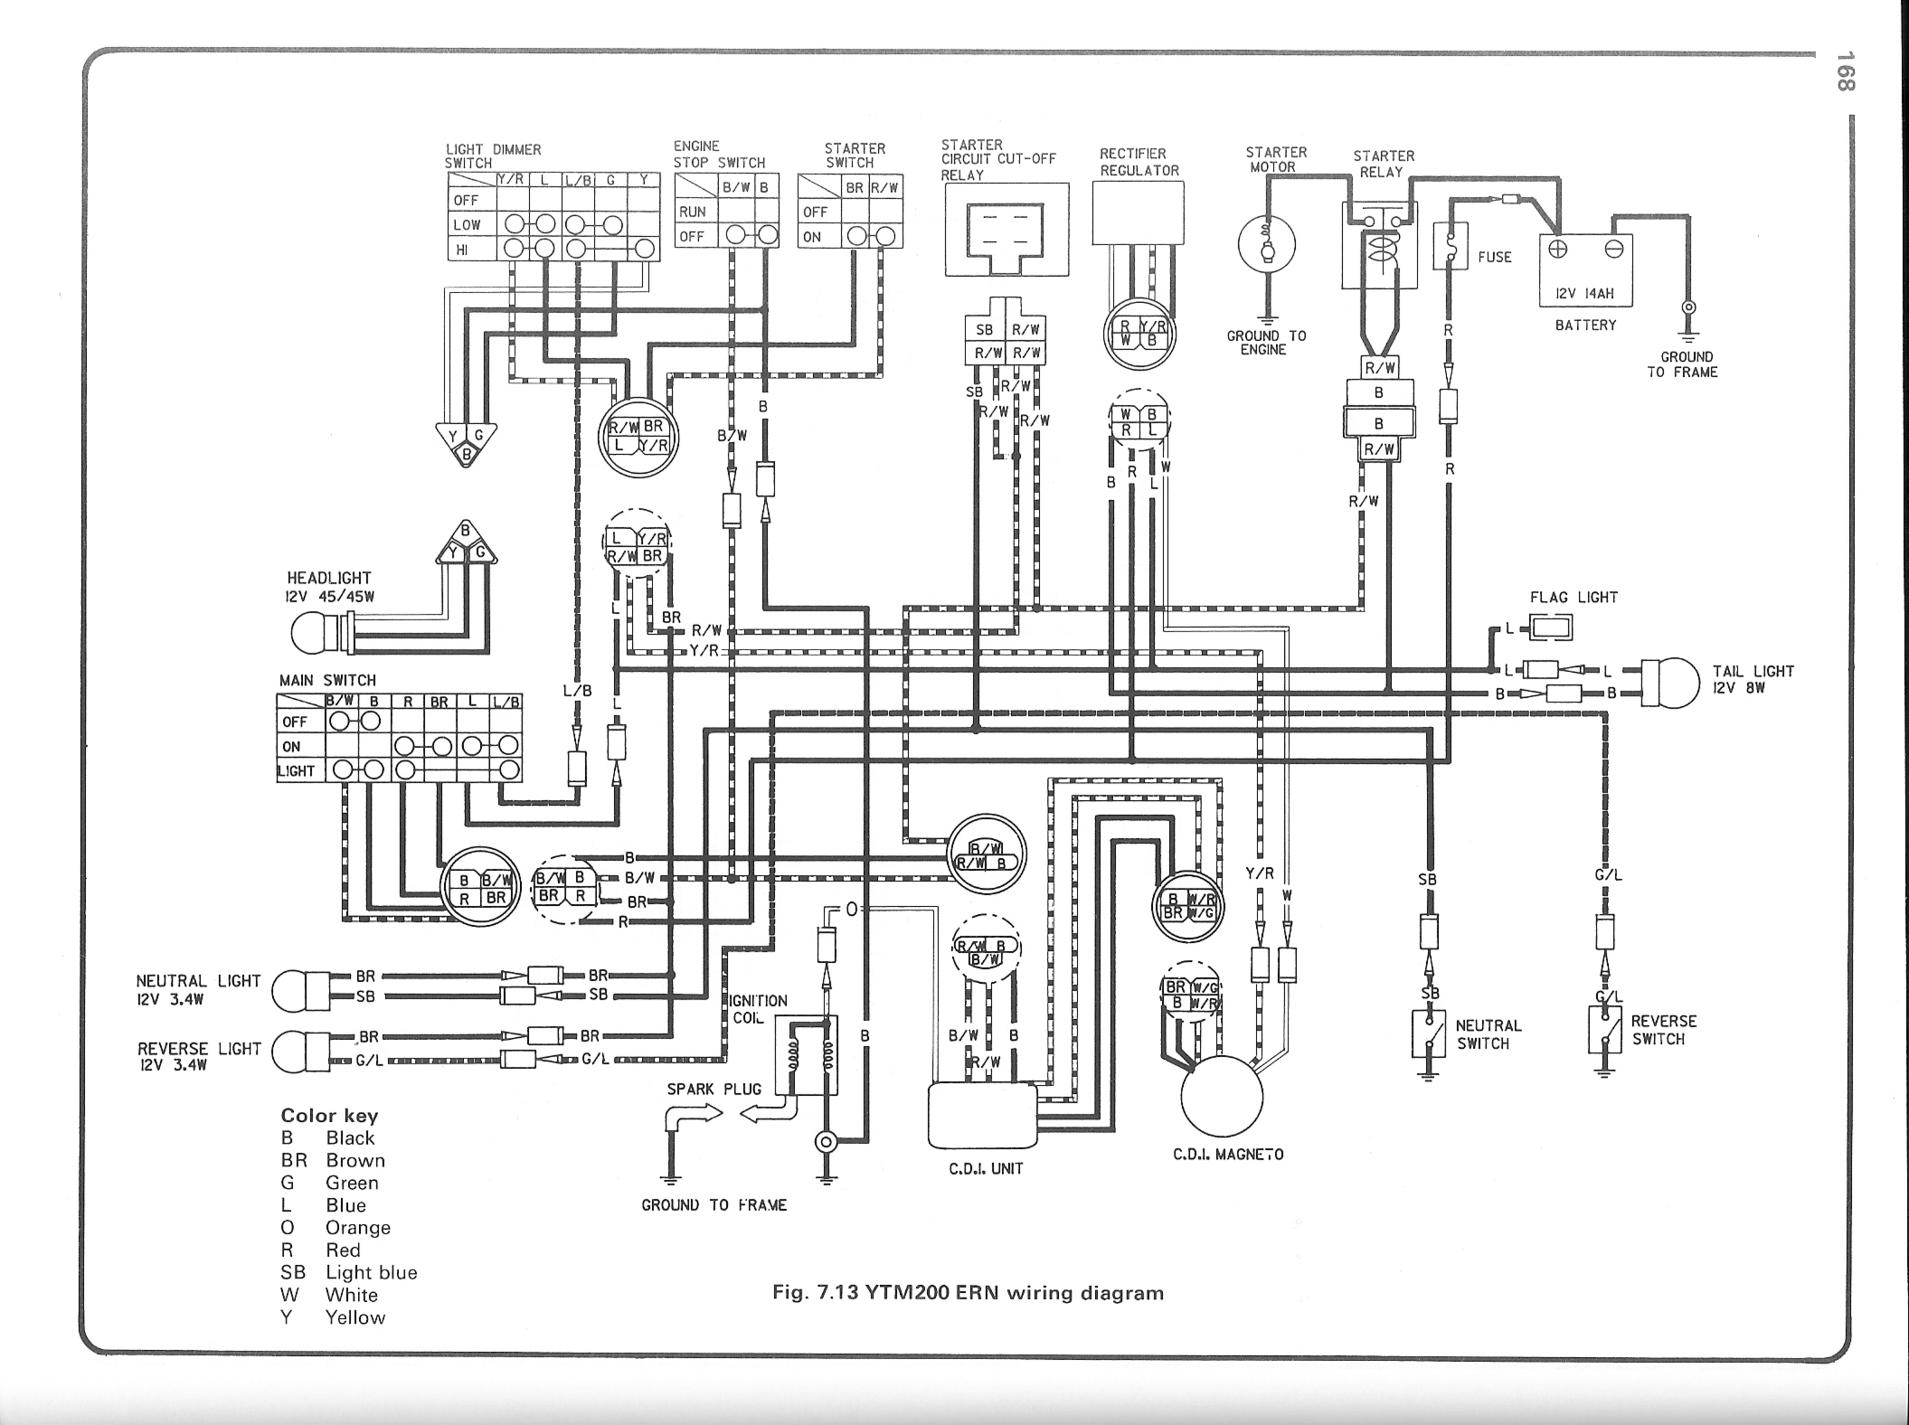 Golf Cart Solenoid Wiring Diagram further Positive Ground Plymouth Wiring Diagram moreover Hook 48v 12v Voltage Reducer Converter Club Car Ds Golf Cart Image together with 455 as well 454. on 1997 ez go wiring diagram